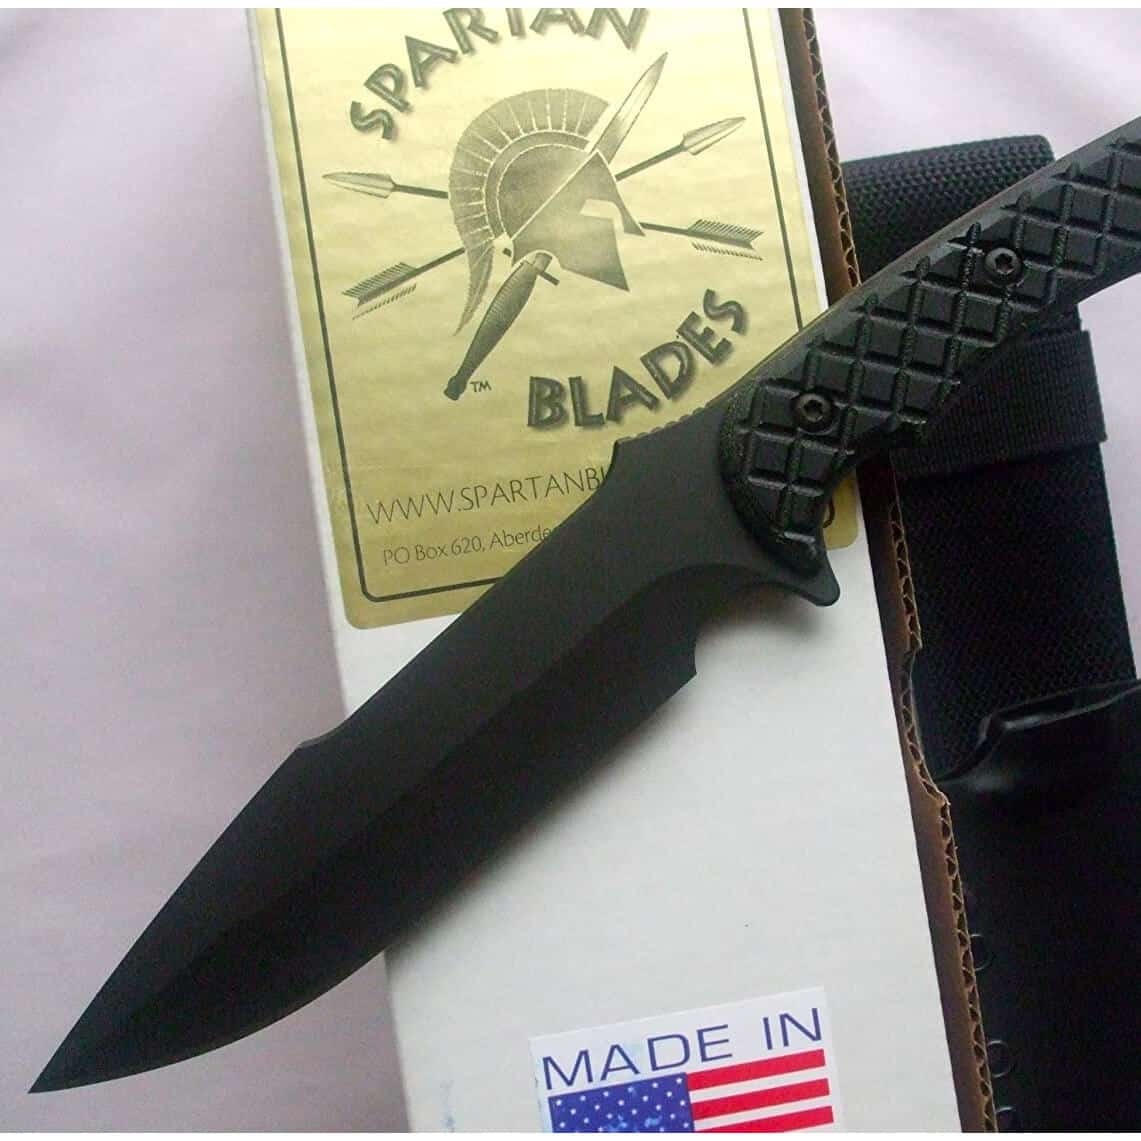 Spartan Blades Horkos Fixed Blade Fighting Utility Knife